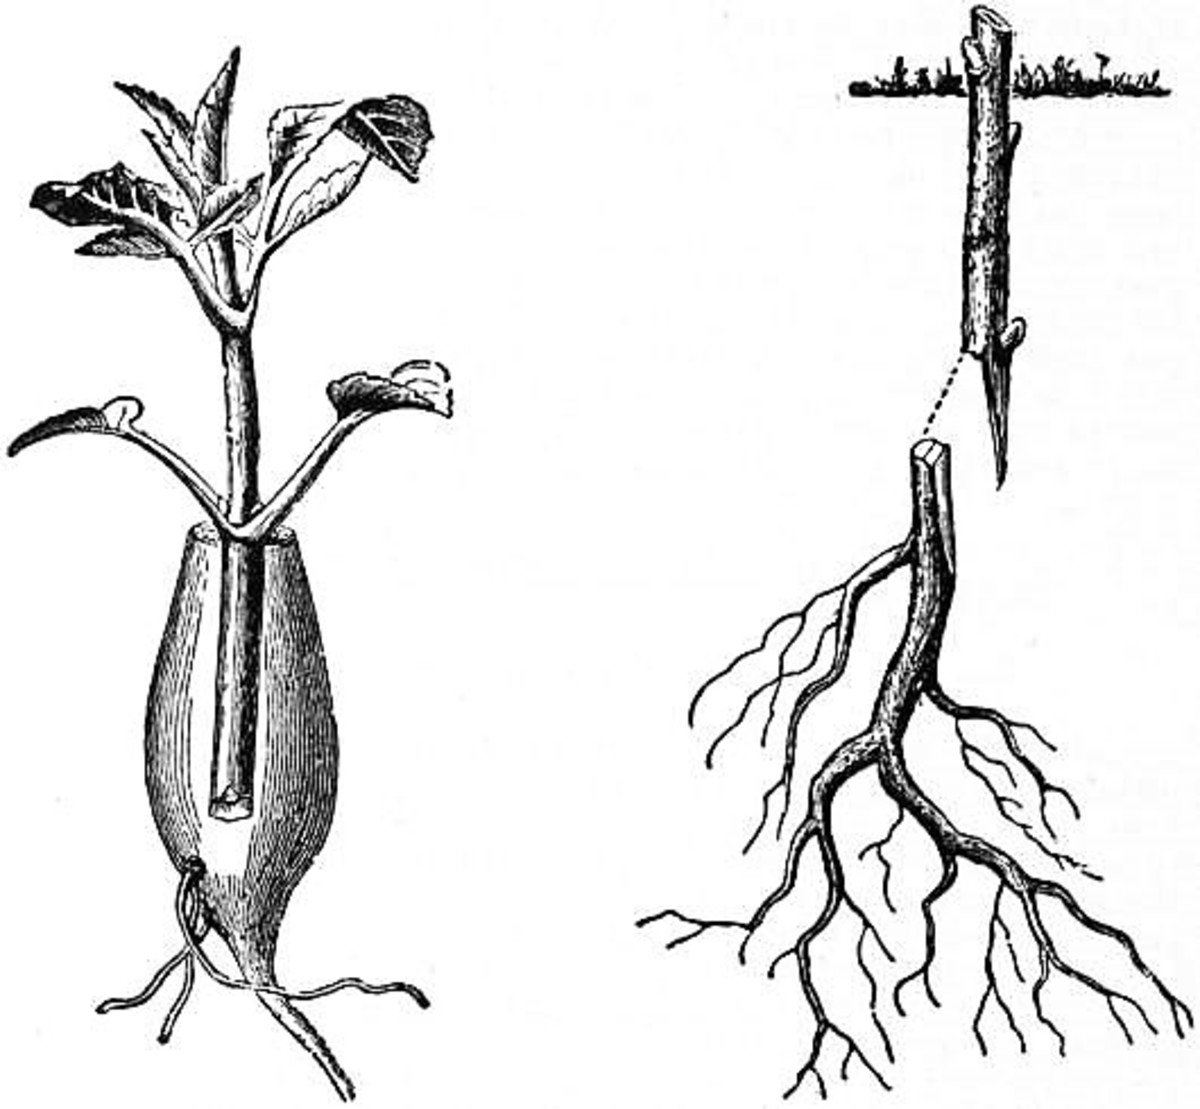 The grafting process in a dahlia and a woody plant in 1911